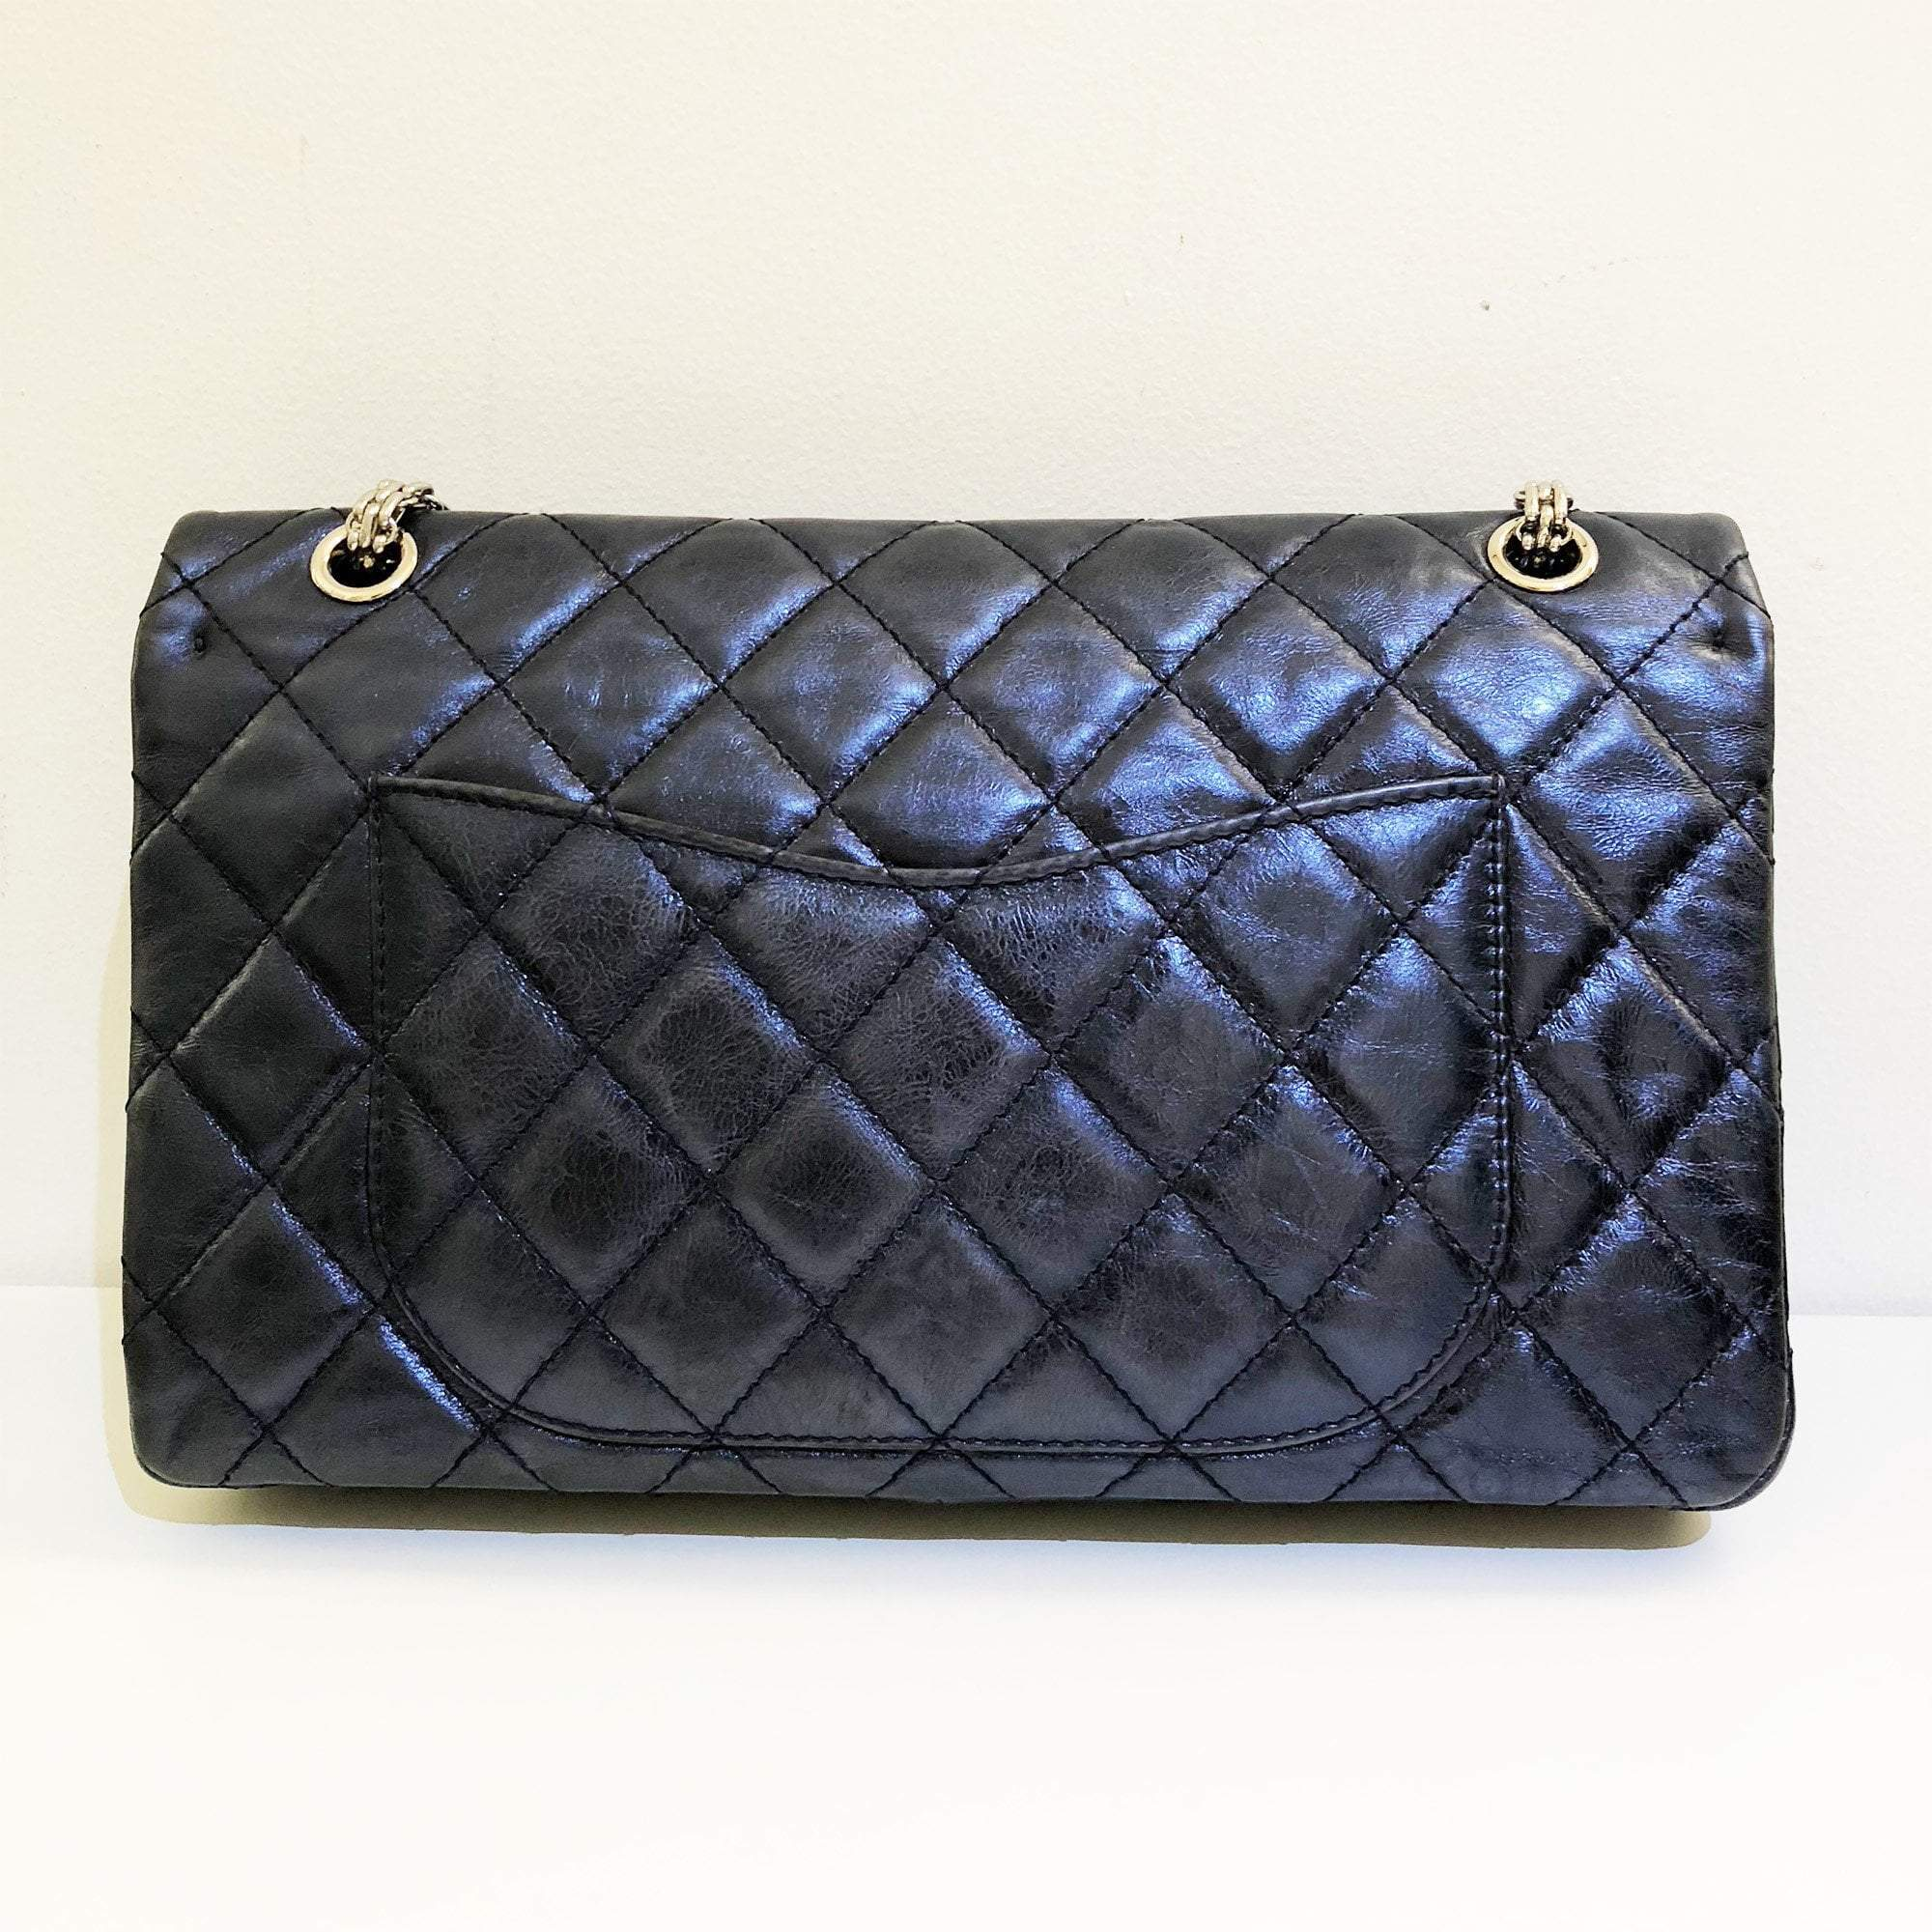 Chanel Metallic Blue Jumbo 2.55 Reissue Double Flap Bag